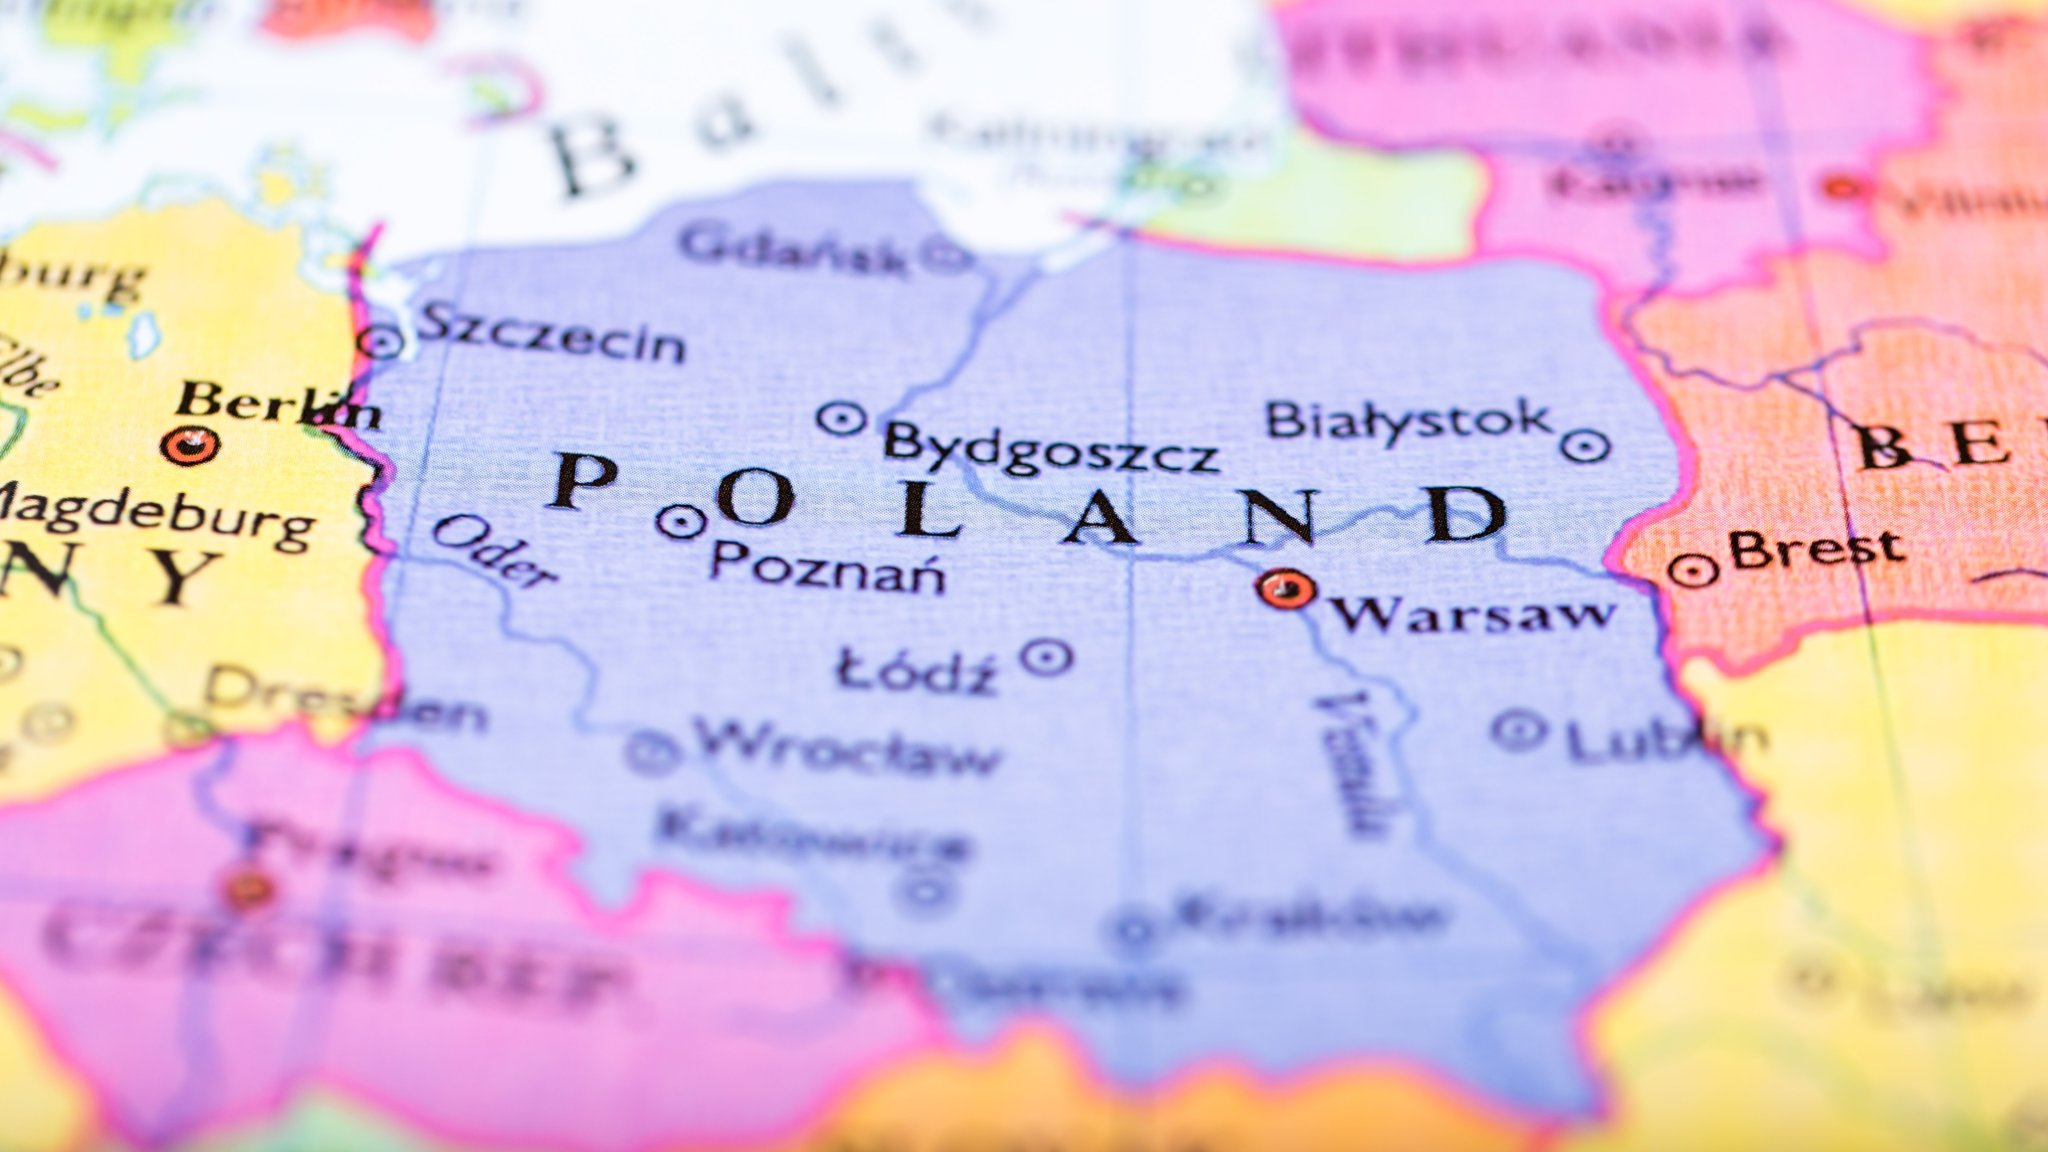 Iron Curtain Map Poland S State Railway Redraws Iron Curtain Financial Times